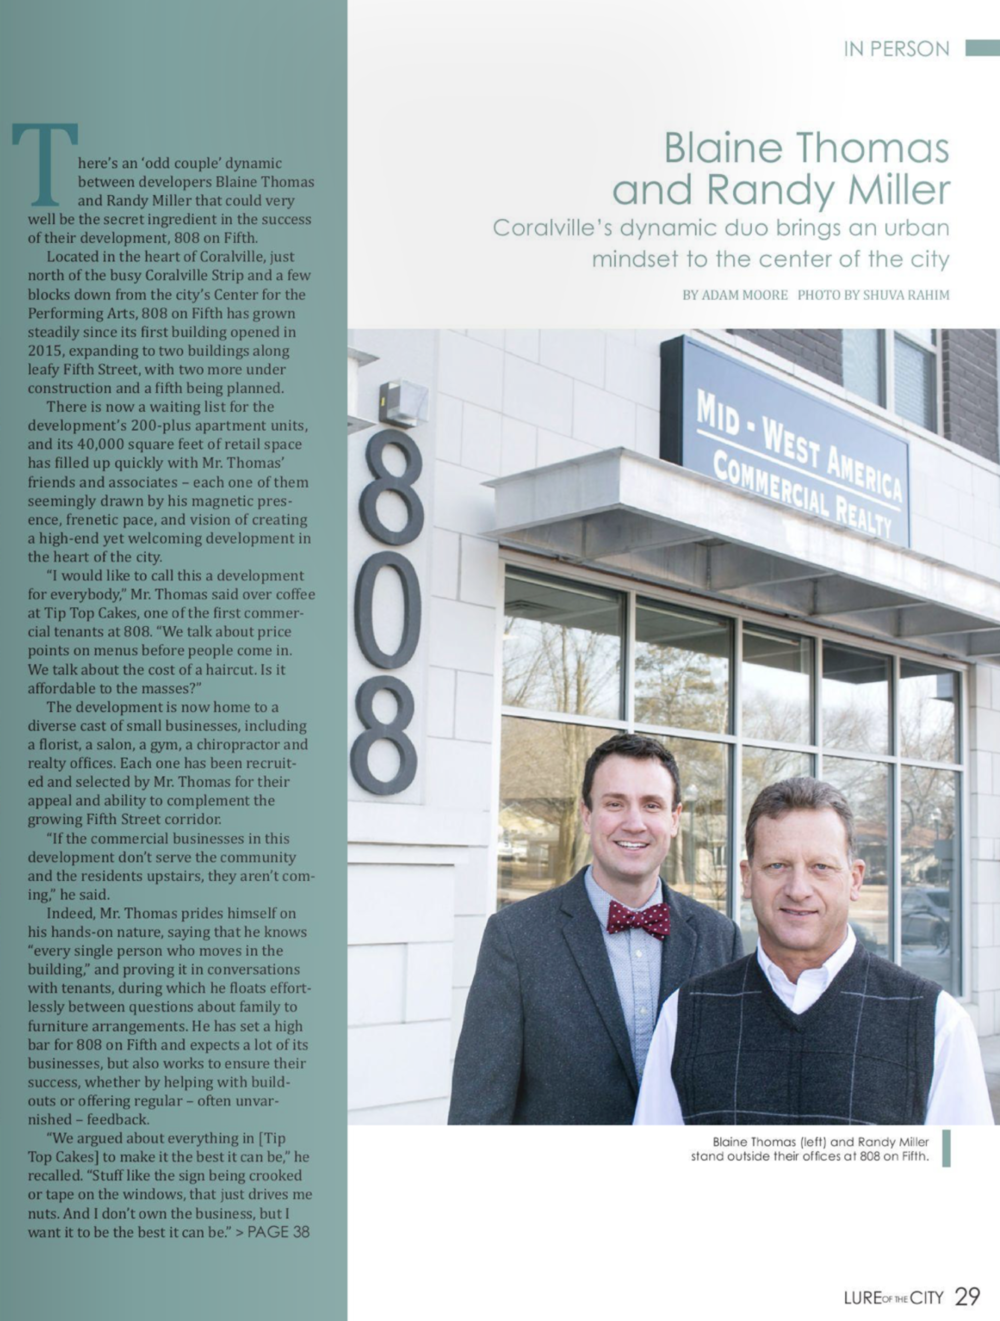 "Blaine Thomas and Randy Miller Featured in the Corridor Business Journal's Article ""Coralville's dynamic duo bring an urban mindset to the center of the city"" by Adam Moore"